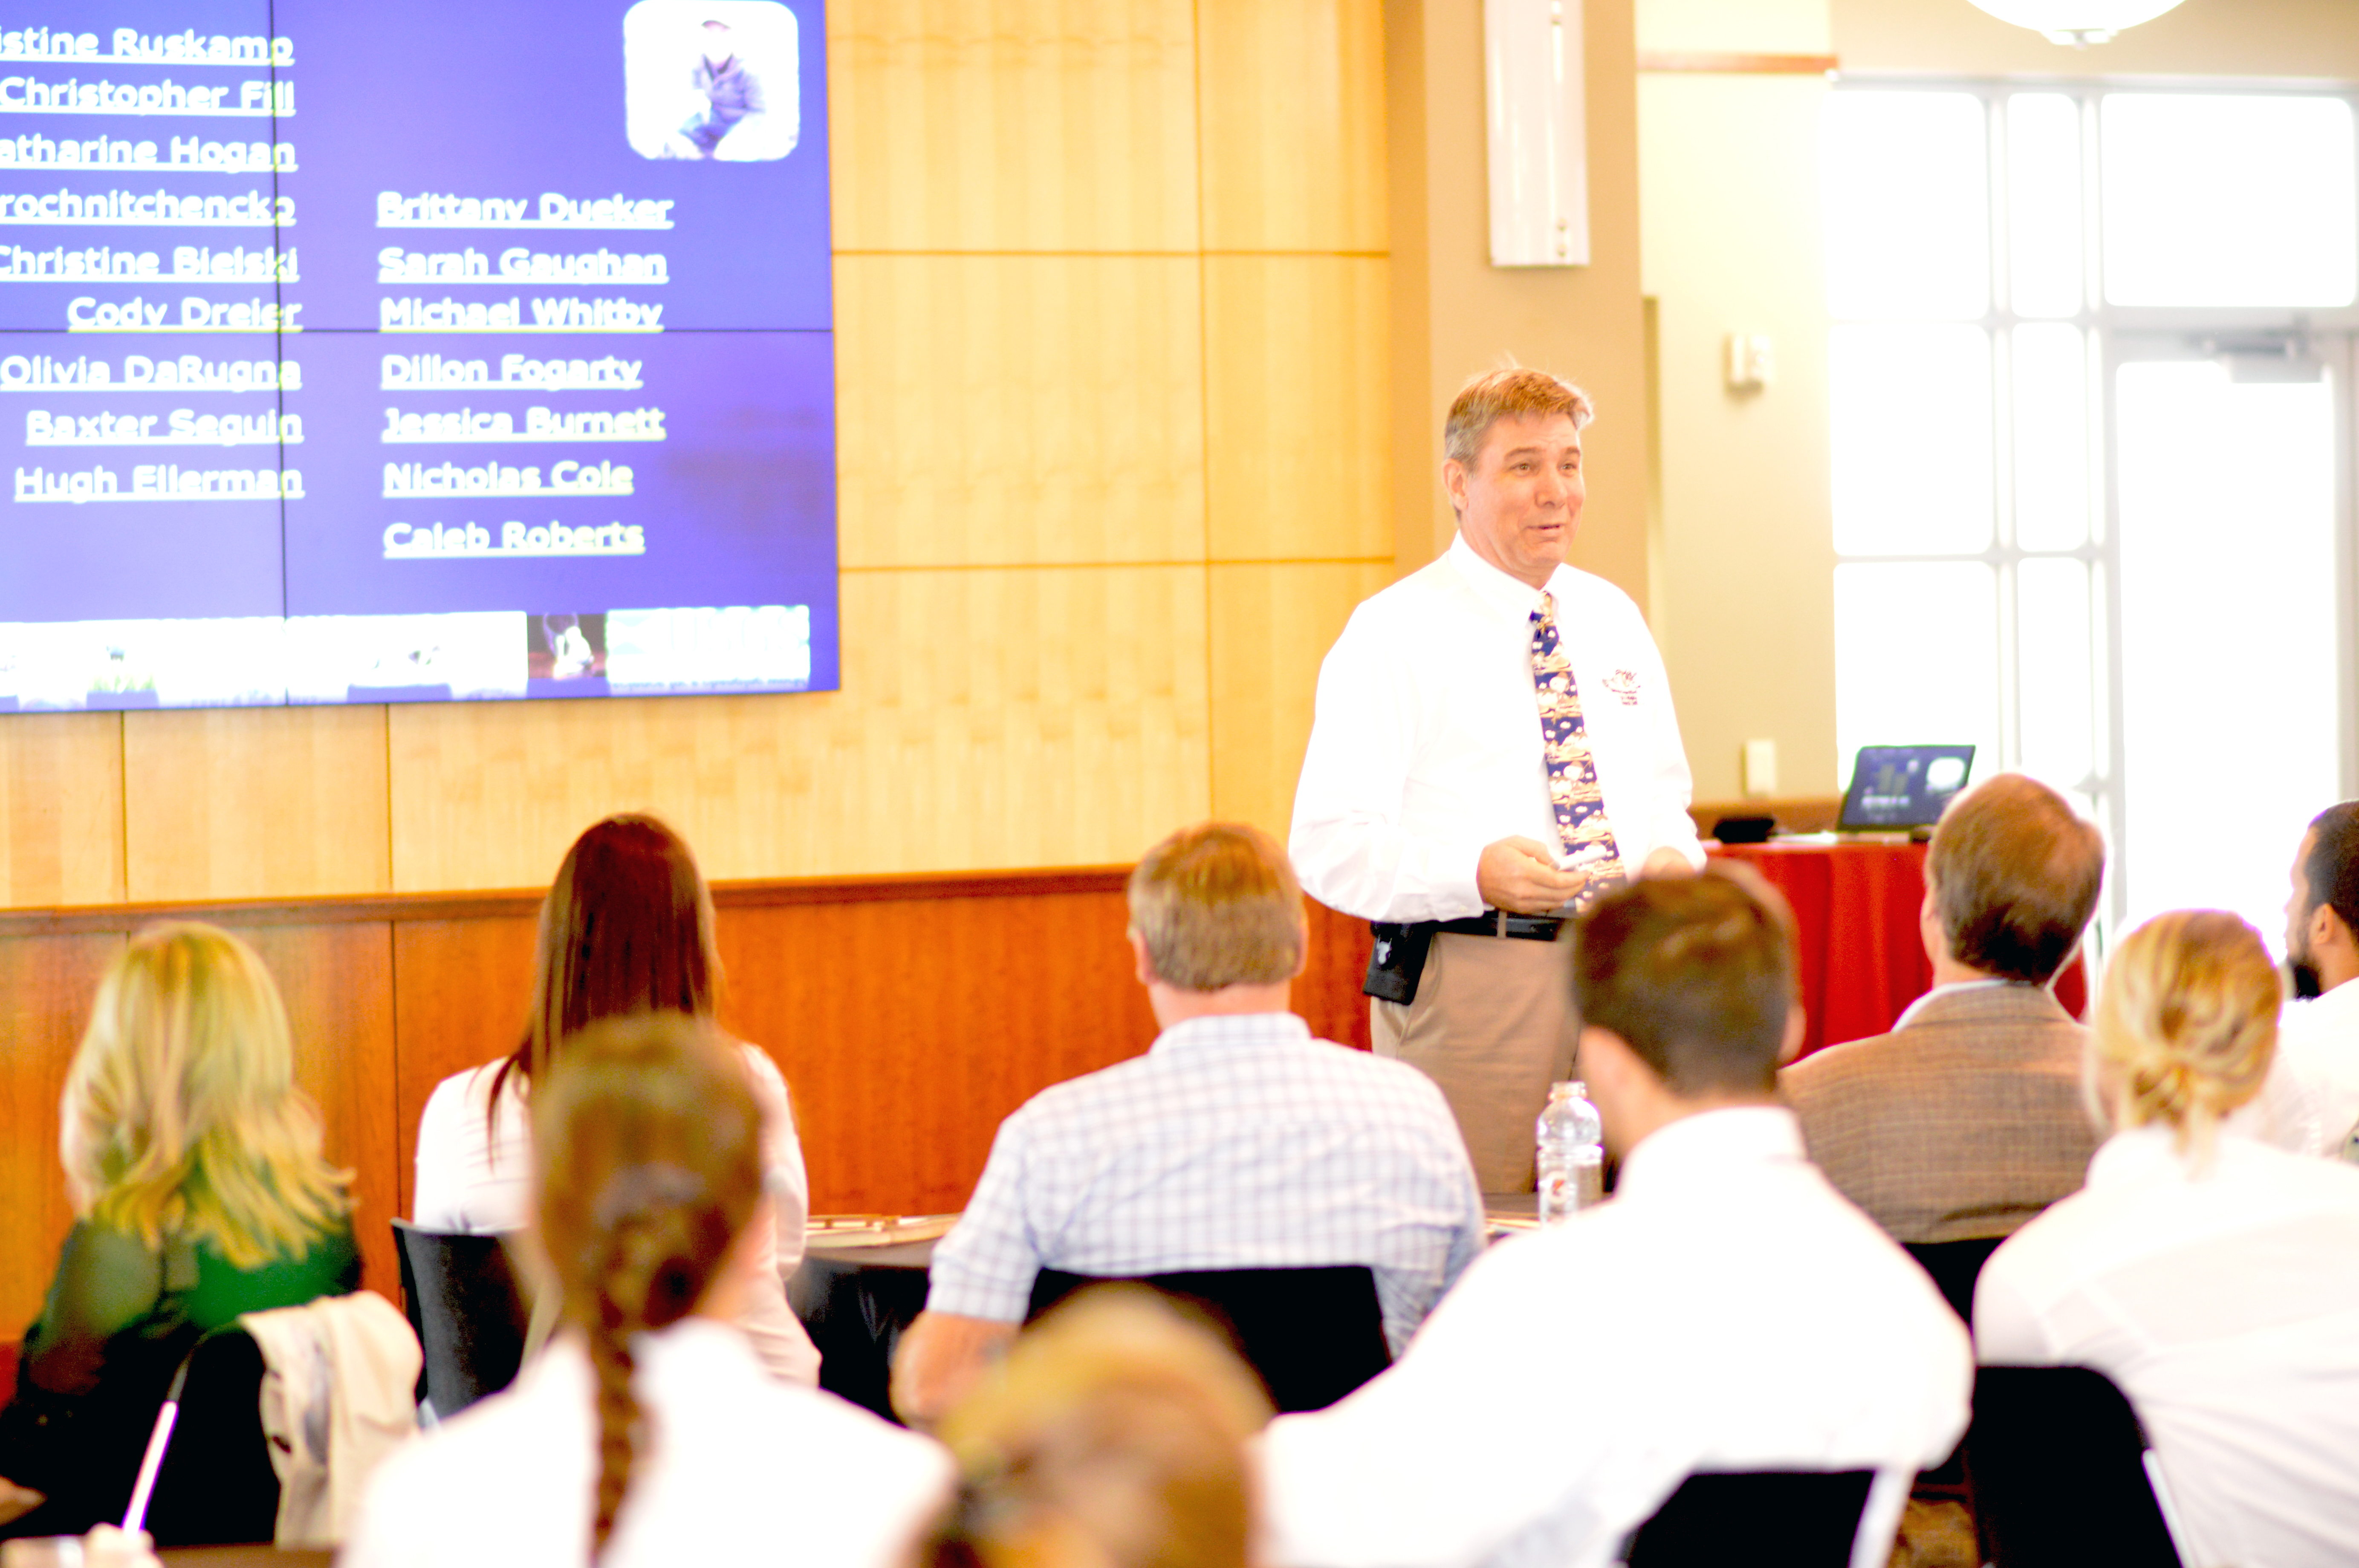 Kevin Pope, then assistant unit leader, addresses the audience during the Nebraska Cooperative Fish and Wildlife Research Unit's annual meeting in fall 2018 in Lincoln. | Natural Resources